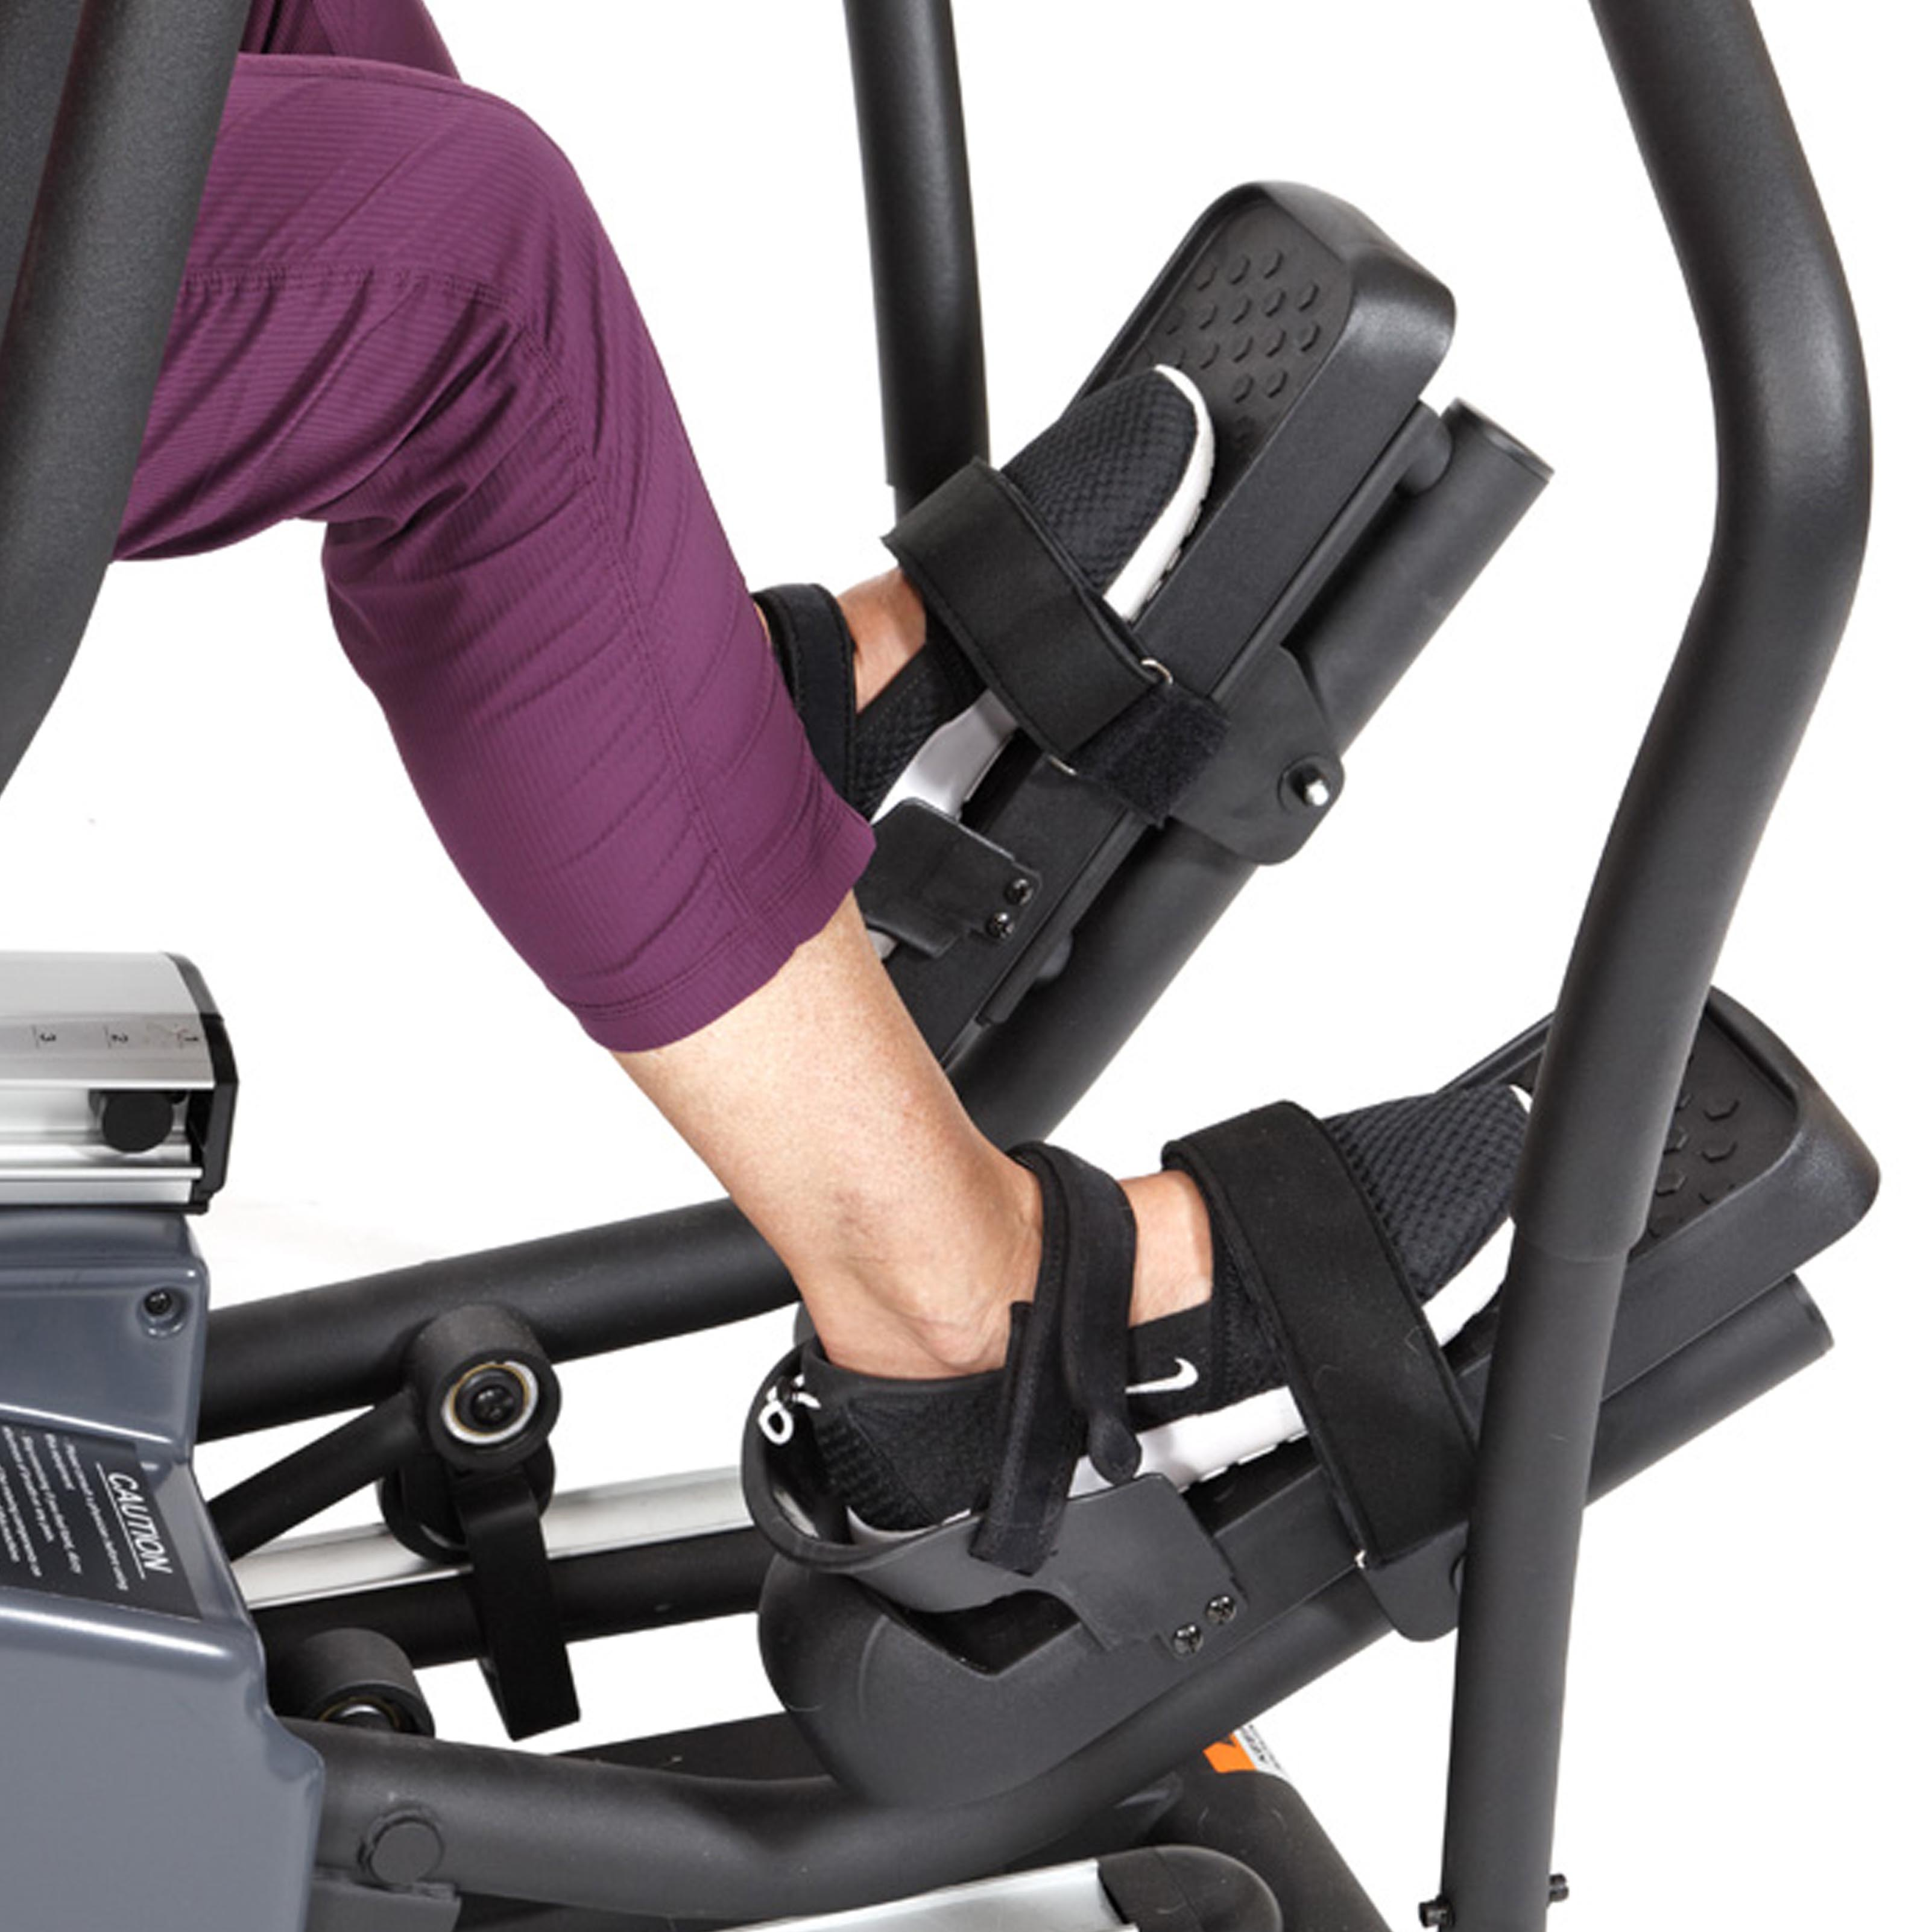 PhysioStep MDX Recumbent Elliptical Foot